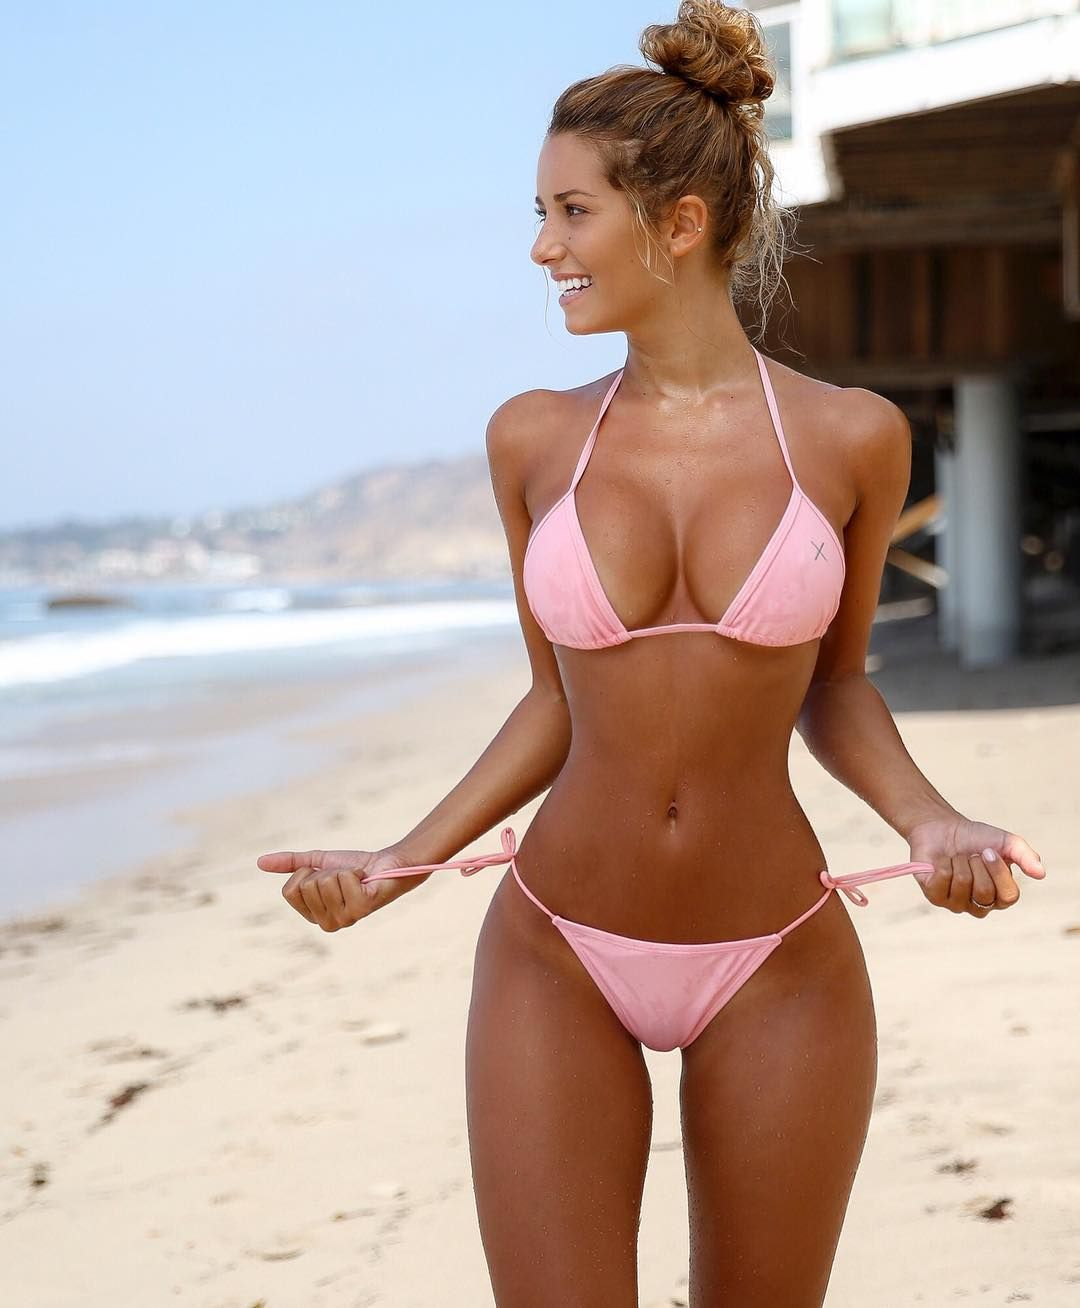 youn-sexy-bikini-girls-on-the-beach